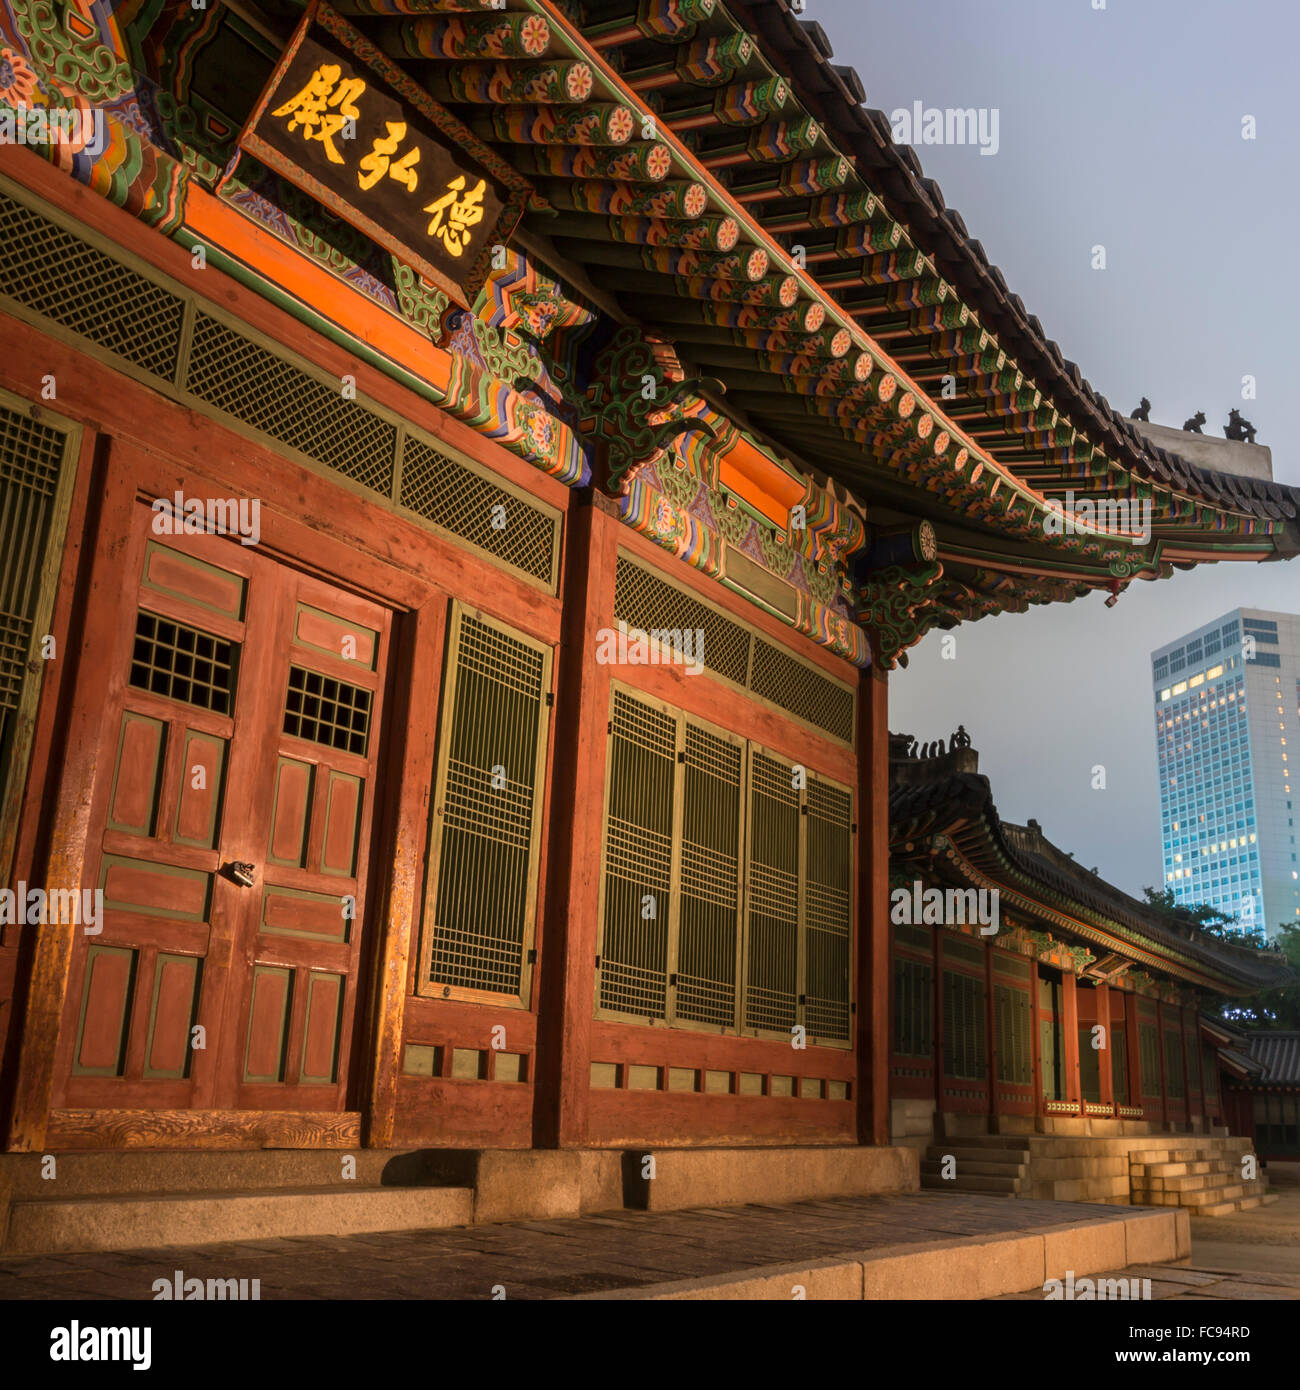 Deoksugung Palace, traditional Korean building, illuminated at dusk, with modern building in distance, Seoul, South - Stock Image